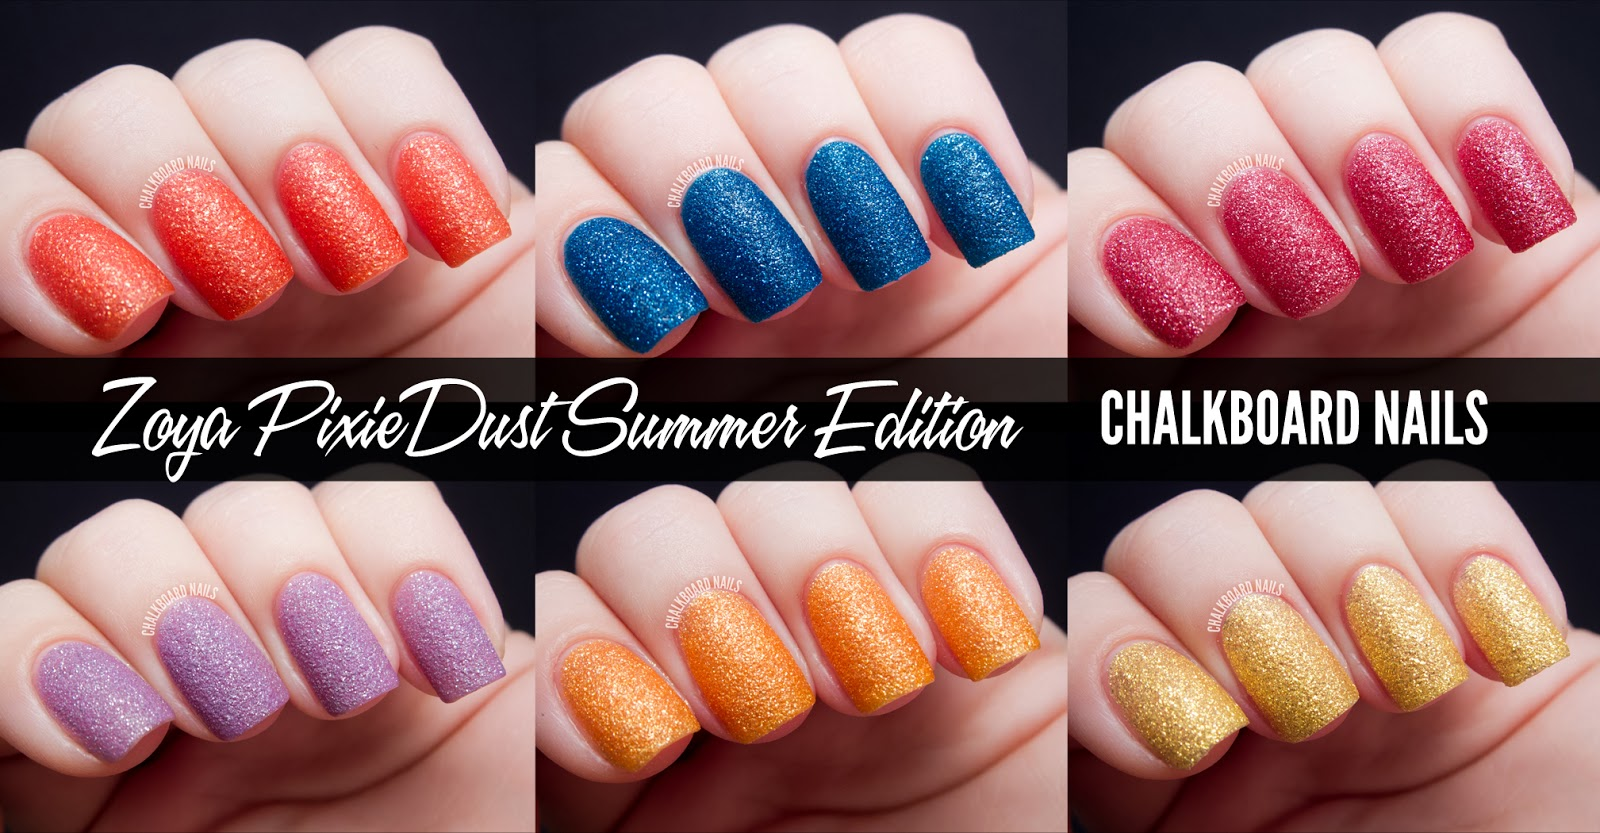 Chalkboard Nails Zoya PixieDust Summer Edition